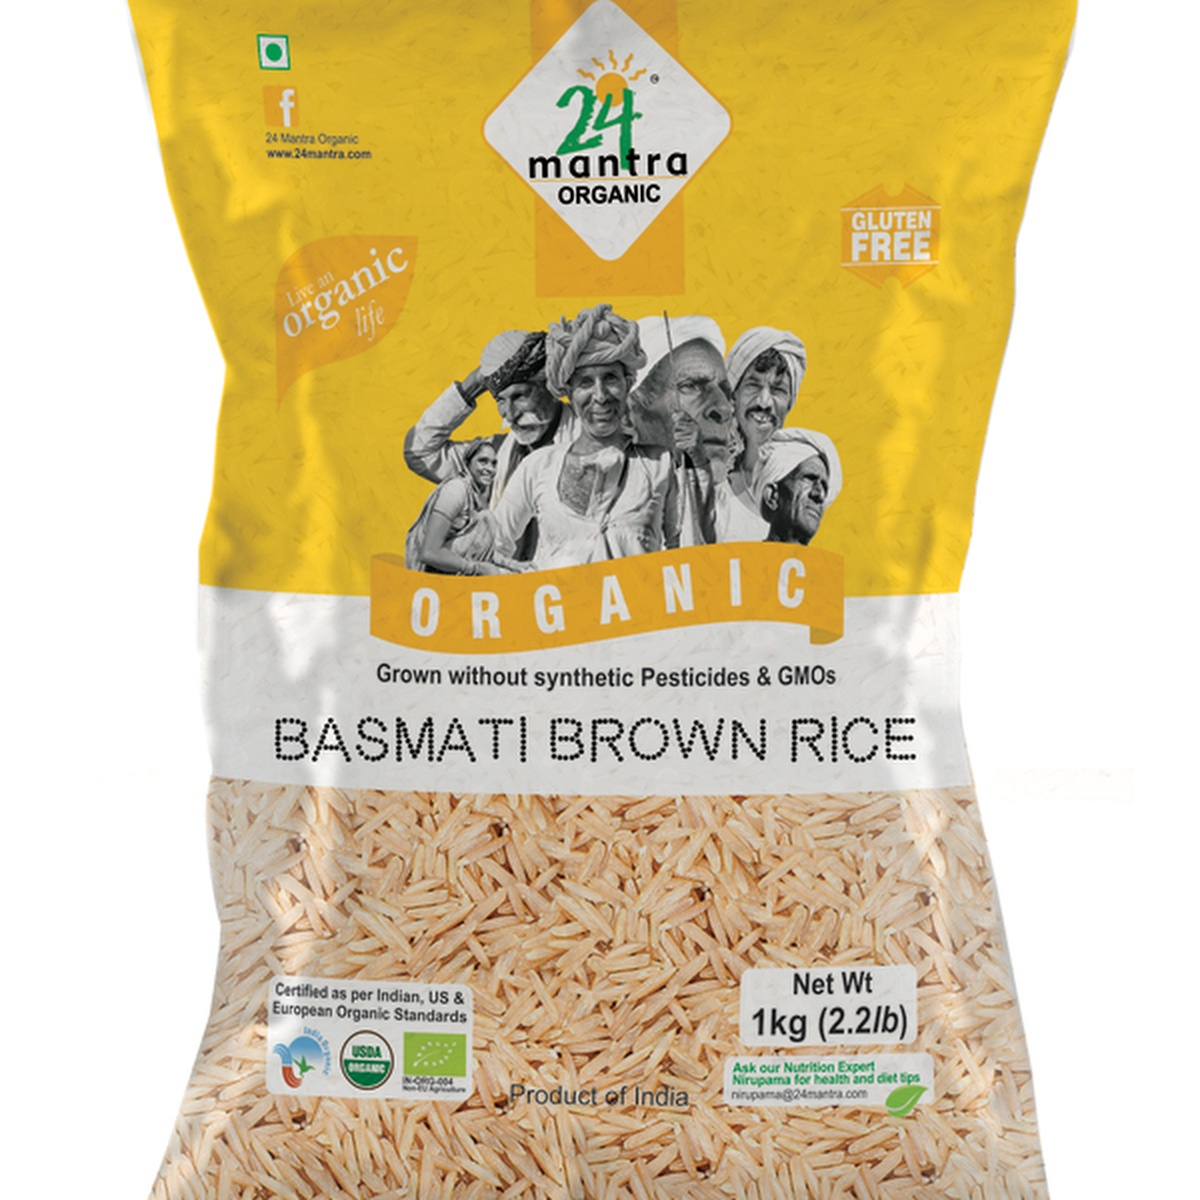 24 Mantra Basmati Brown Rice 1 Kg